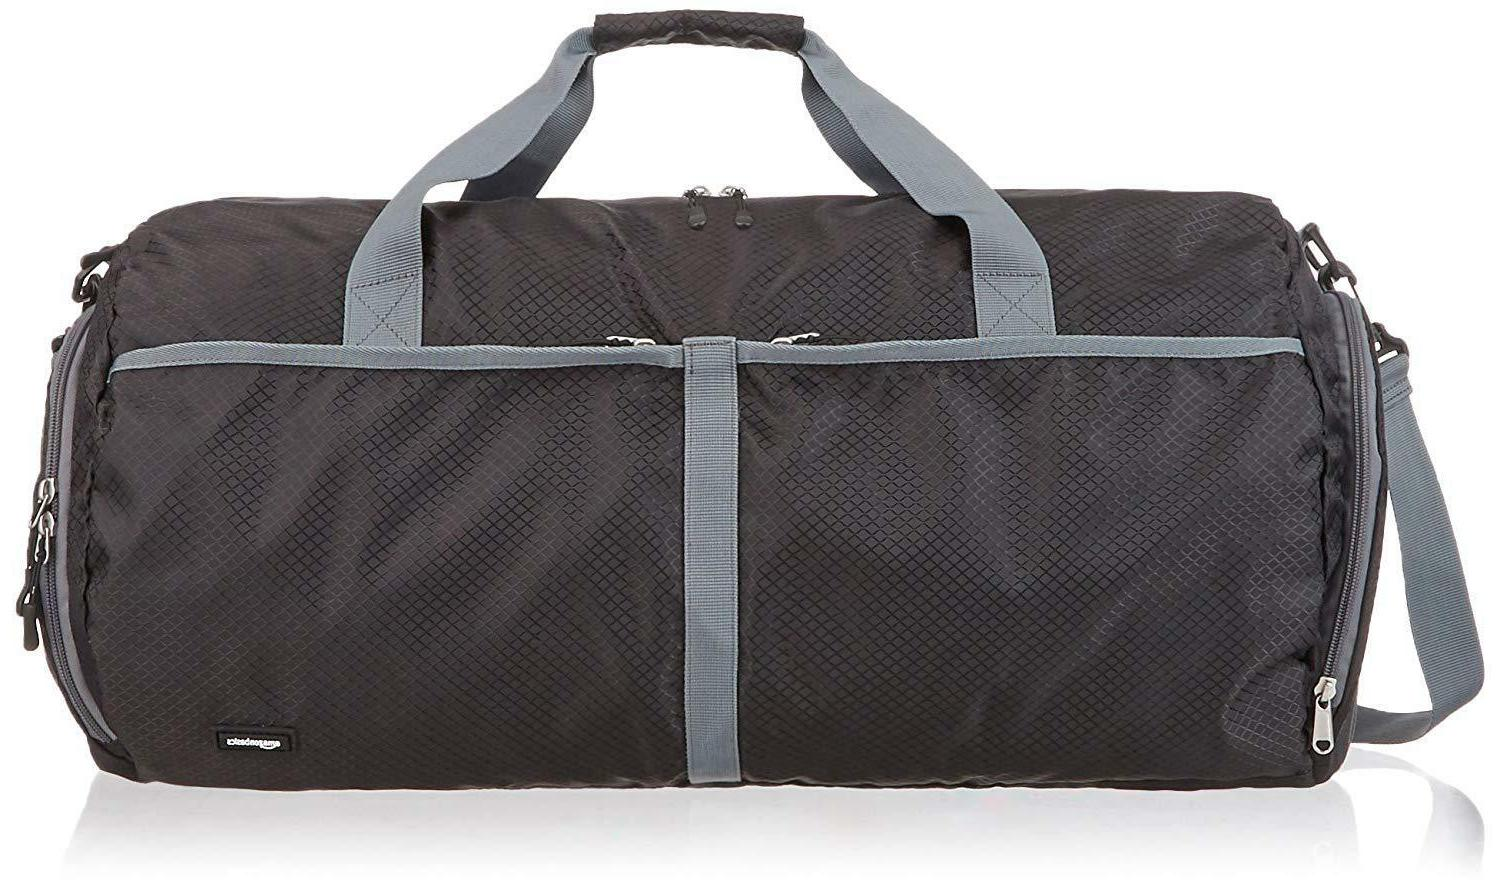 amazonbasics packable travel duffel 23 inch black